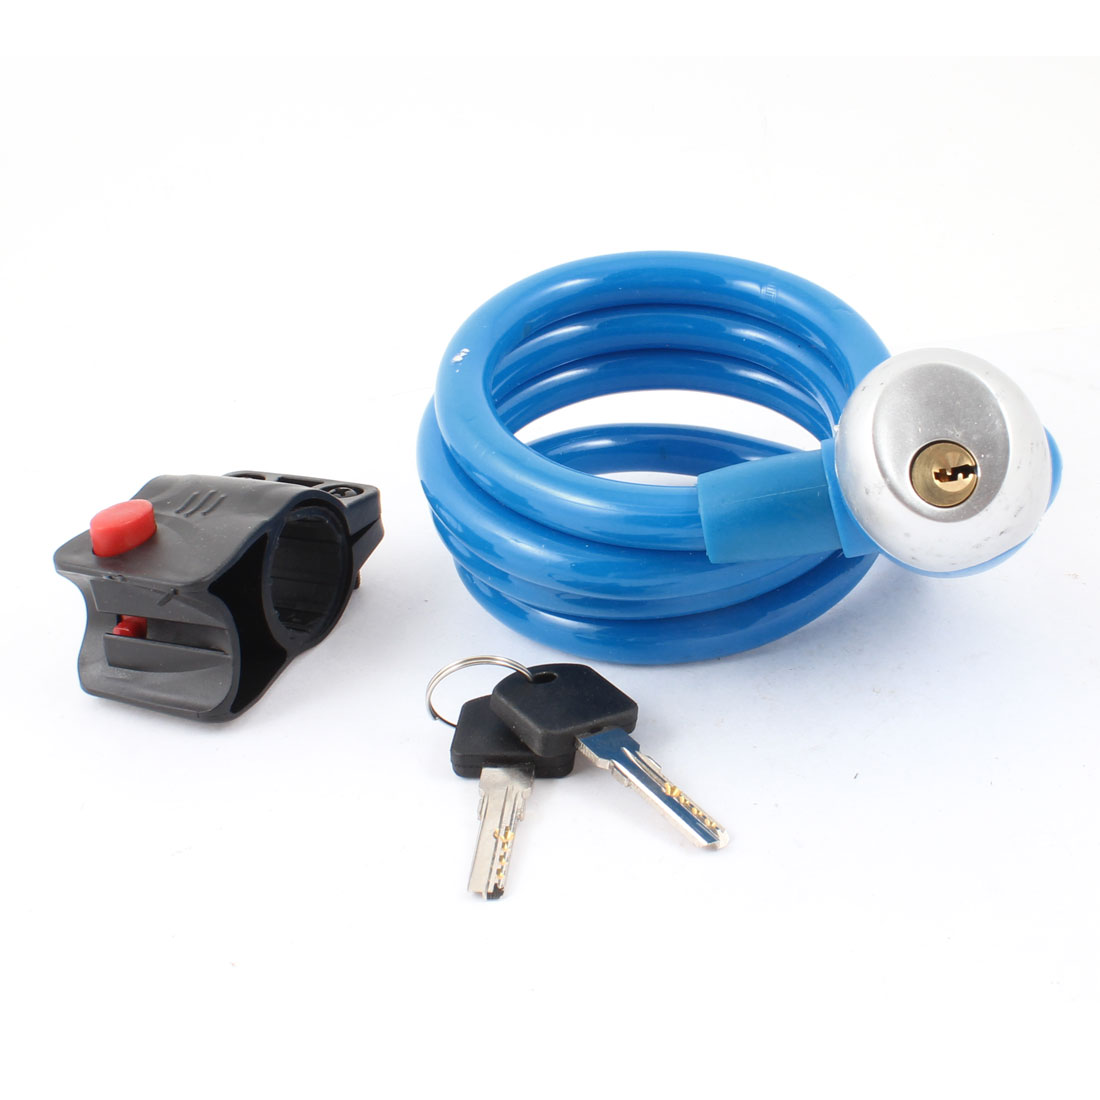 1.2m Long Key Locking Blue Plastic Shielded Steel Cable Lock for Bike Bicycle